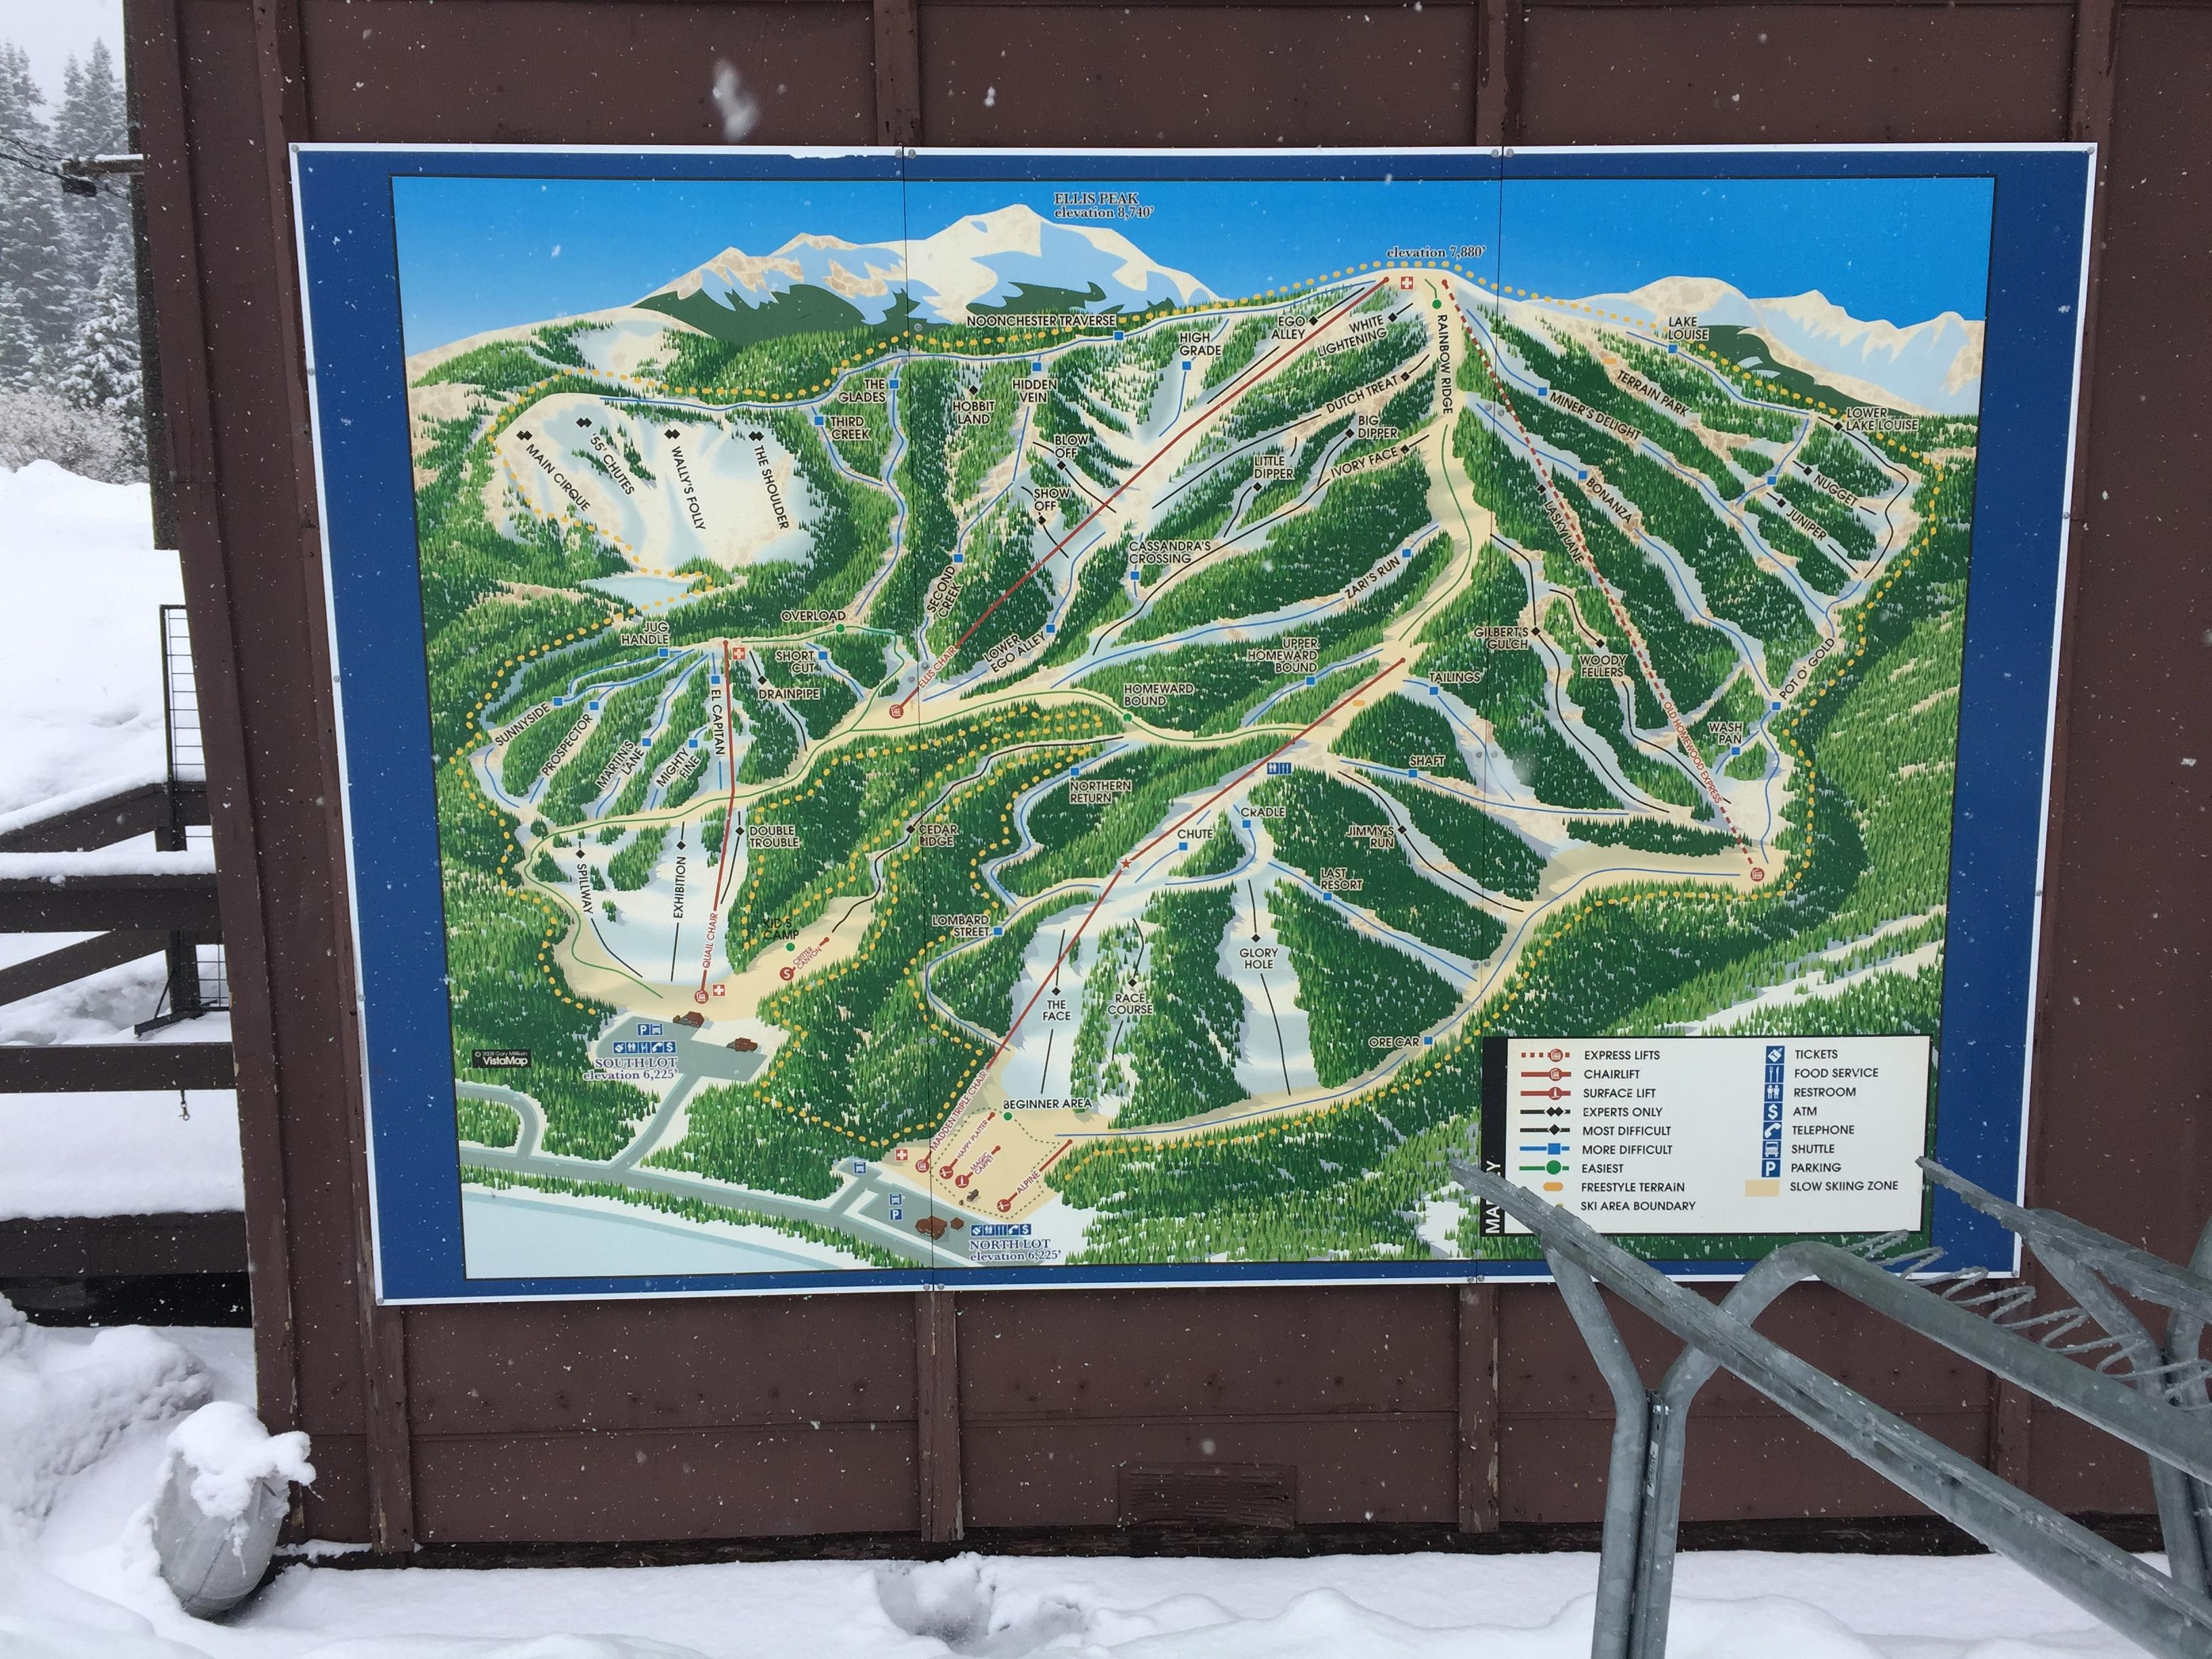 Homewood Mountain Ski resort is more of an intermediate ski experience, with eight lifts and 64 runs.